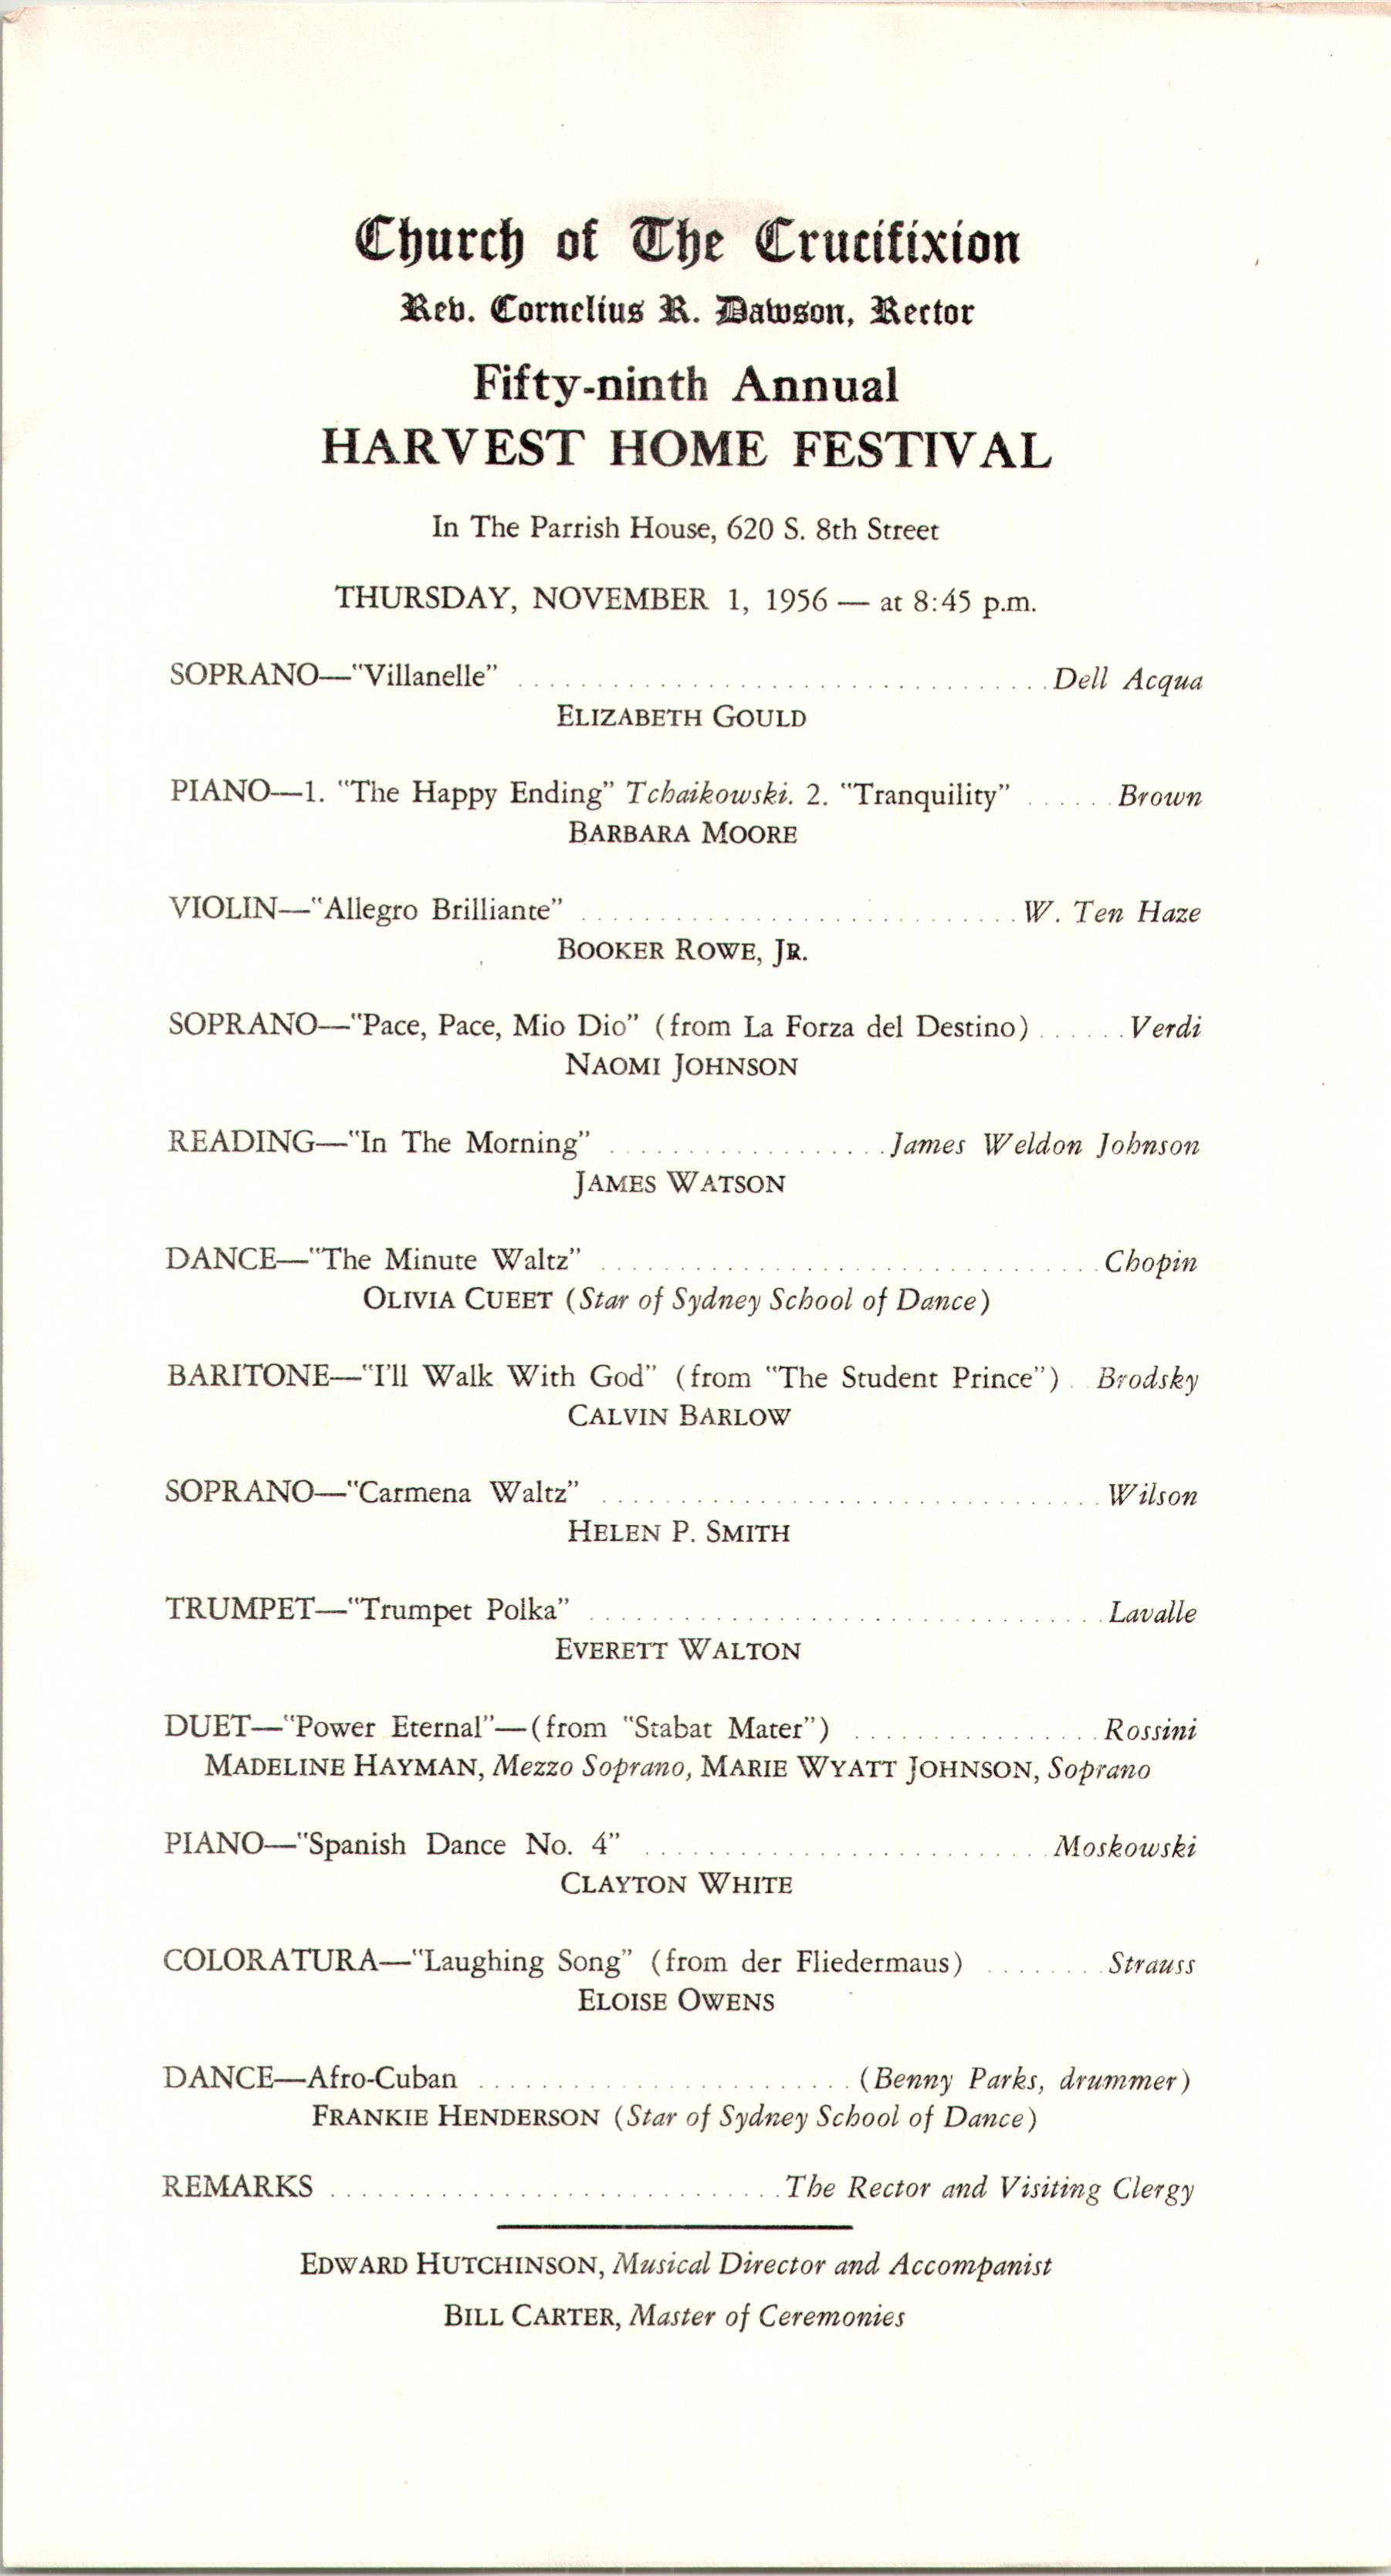 Program for the Fifty-Ninth Annual Harvest Home Festival at Church ...